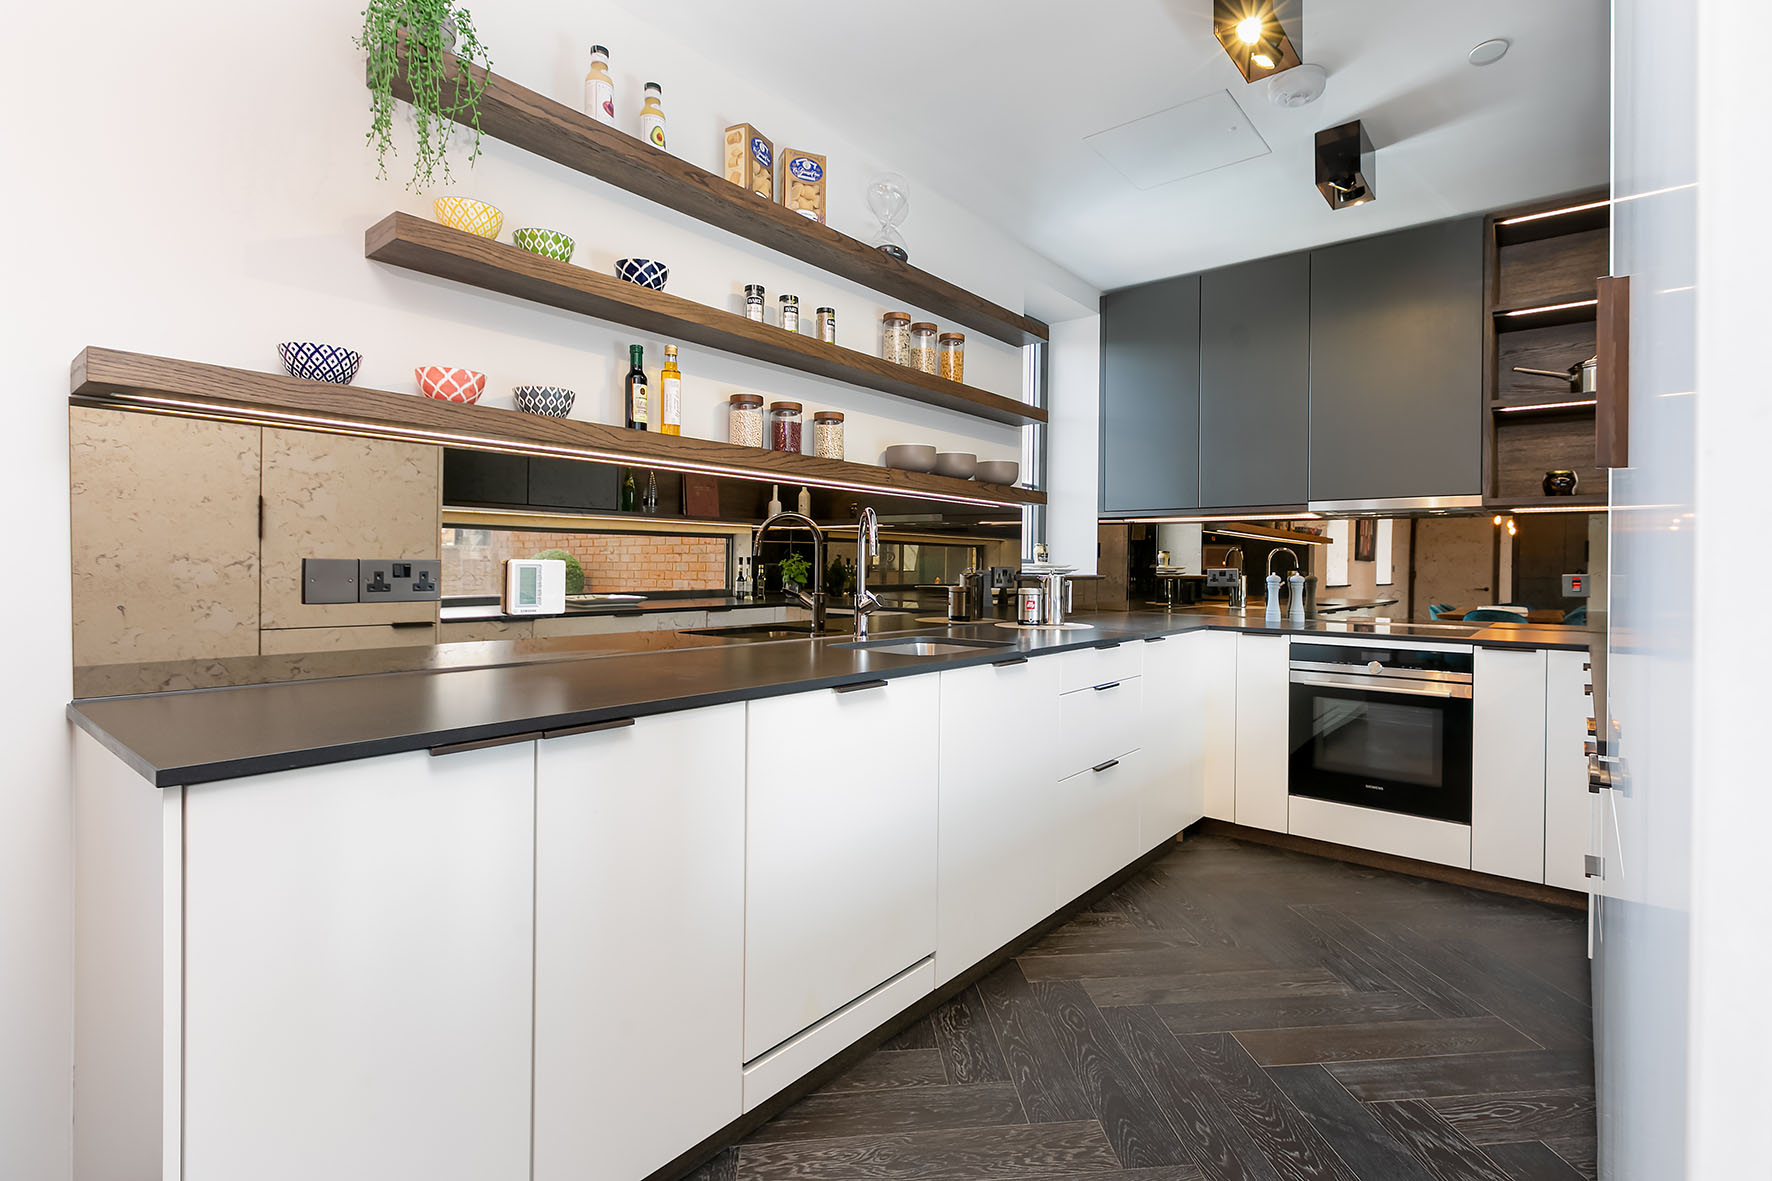 Lovelydays luxury service apartment rental - London - Soho - Great Marlborough St. IX - Lovelysuite - 2 bedrooms - 2 bathrooms - Luxury kitchen - 5 star apartment in london - 6d9c42586e11 - Lovelydays